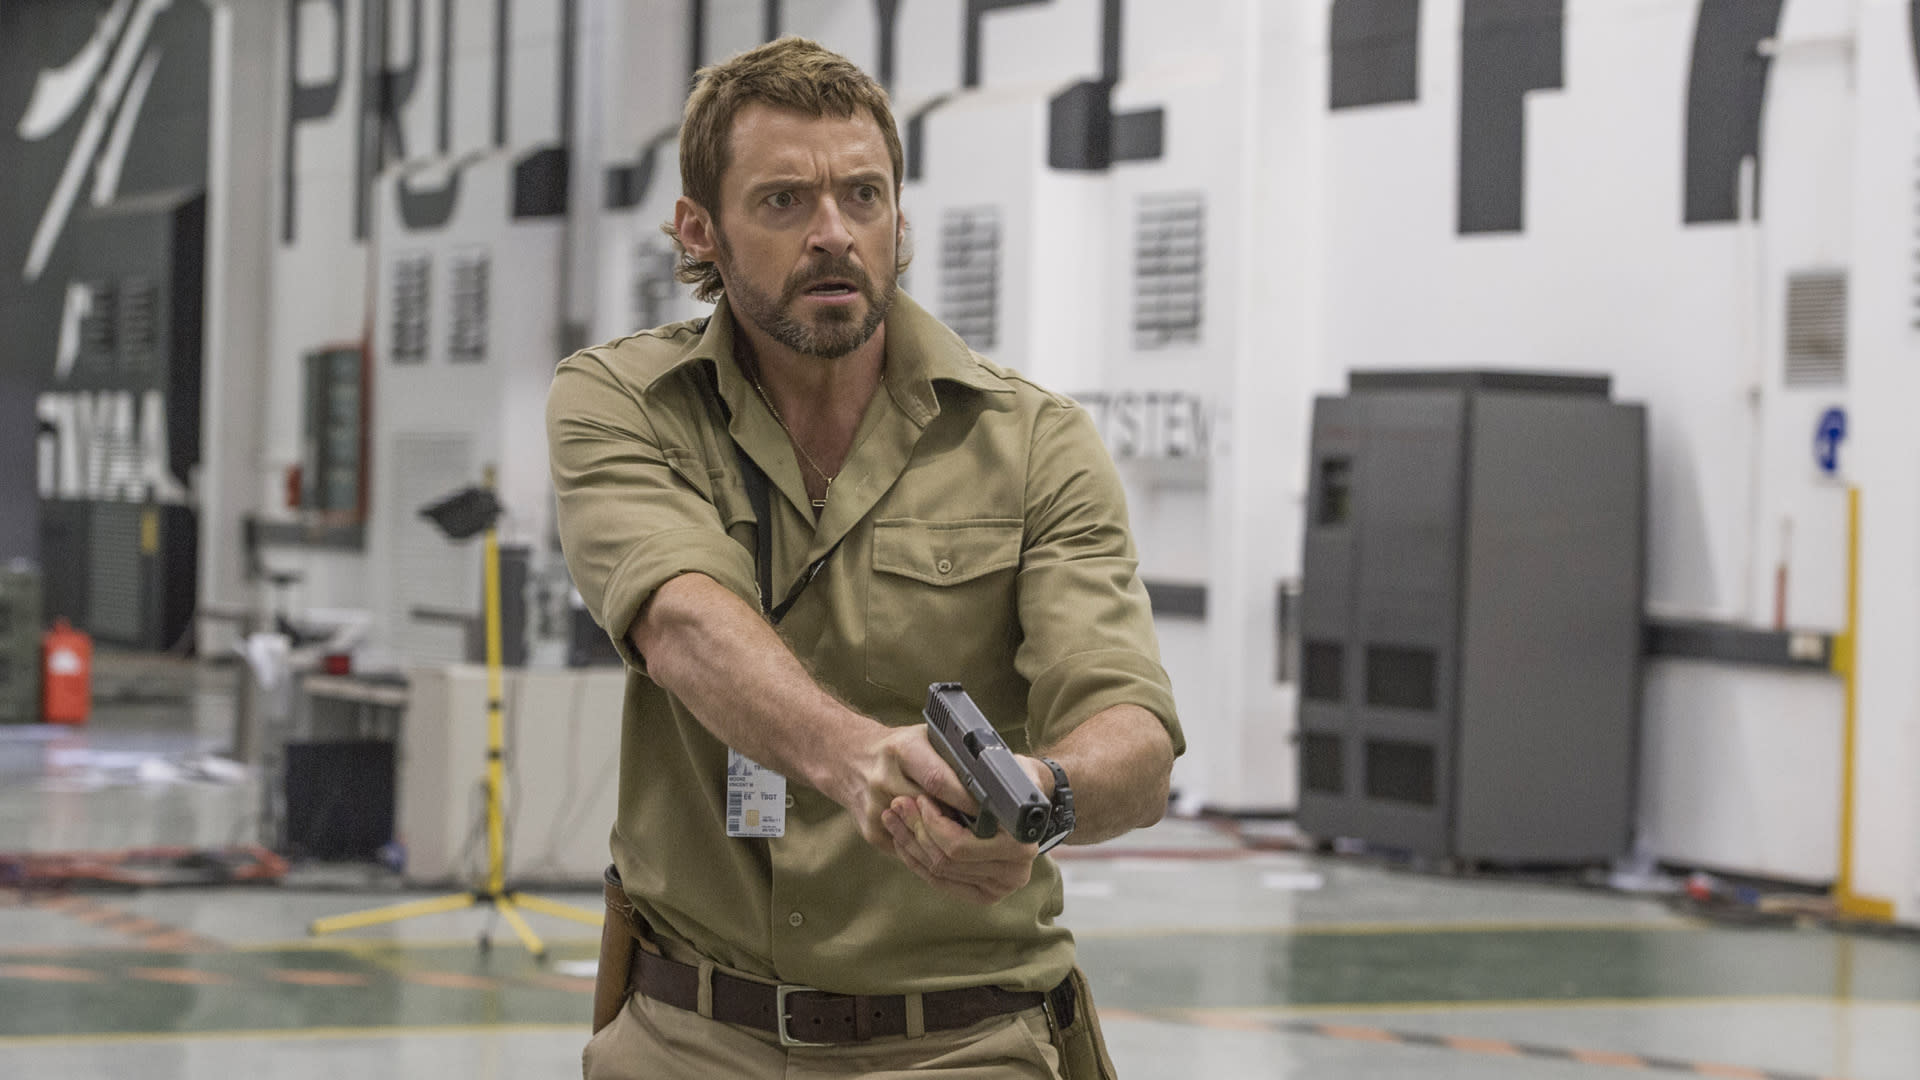 Box Office Preview: 'Chappie' Edging Out 'Unfinished Business' in Slow Weekend